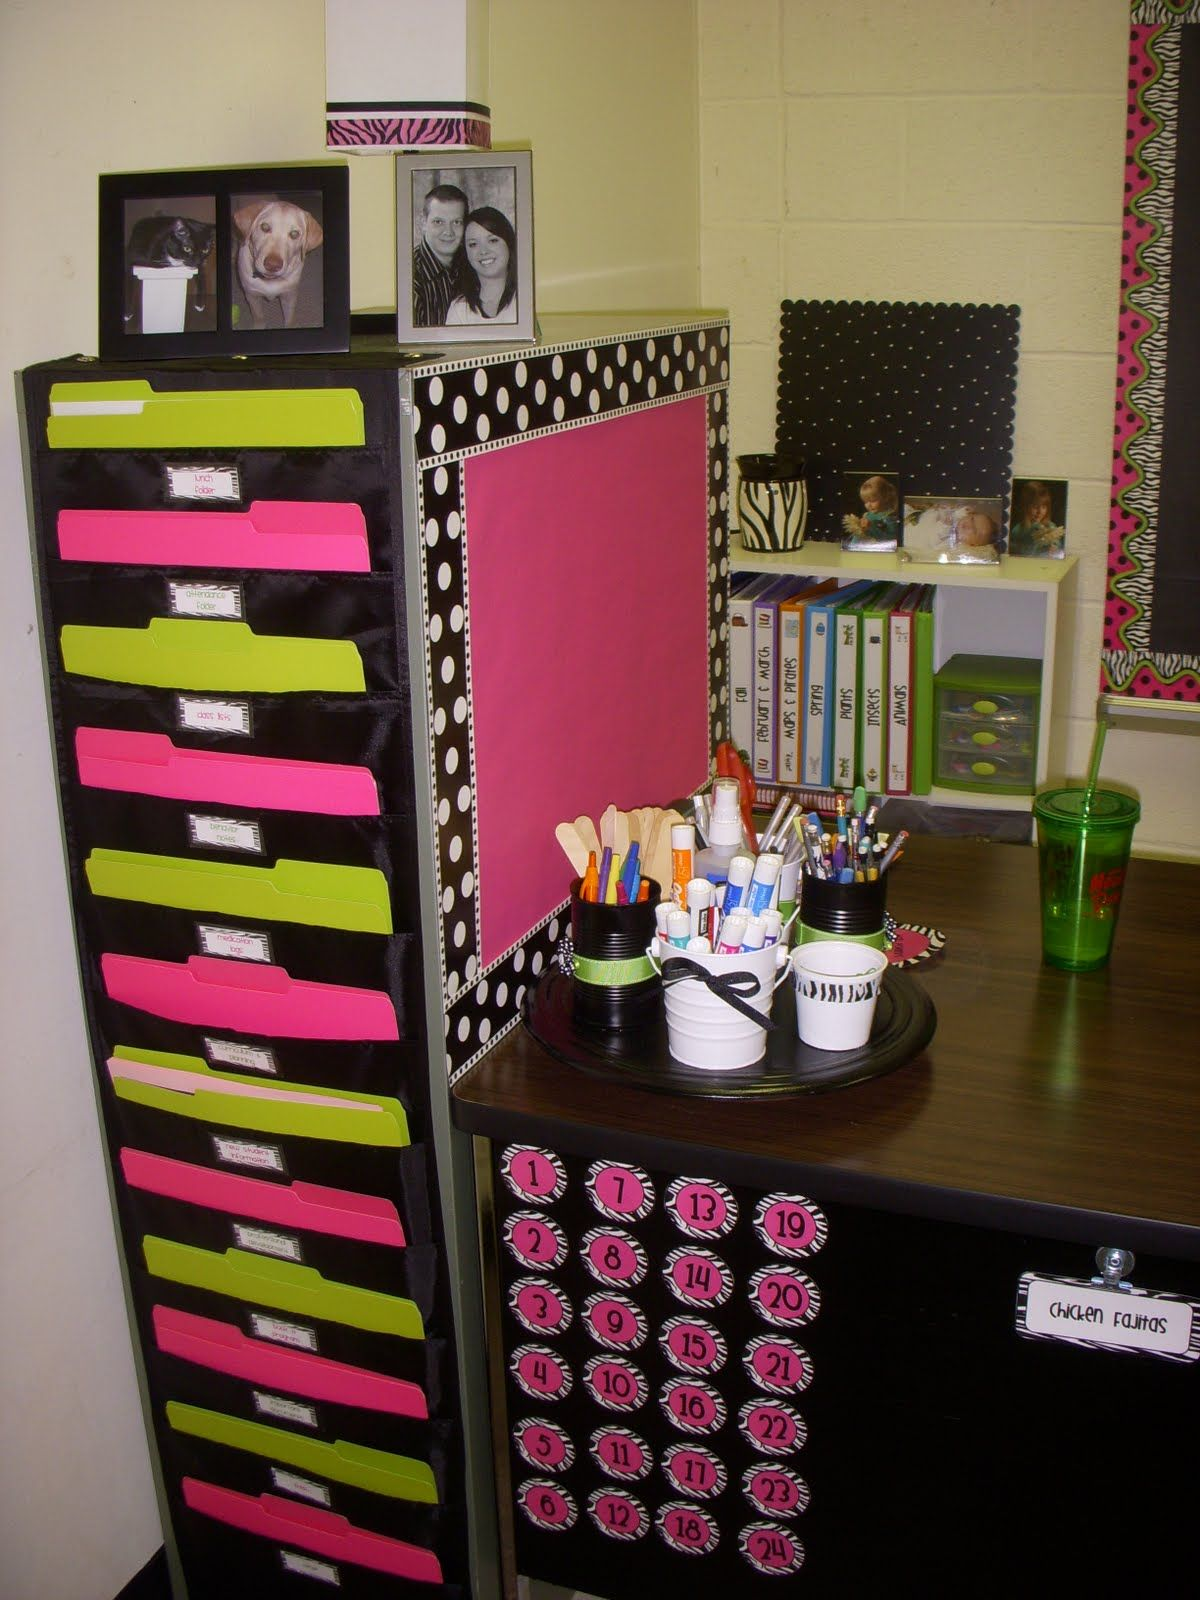 Music Classroom Decoration : Don t forget you can use the backs of filing cabinets and